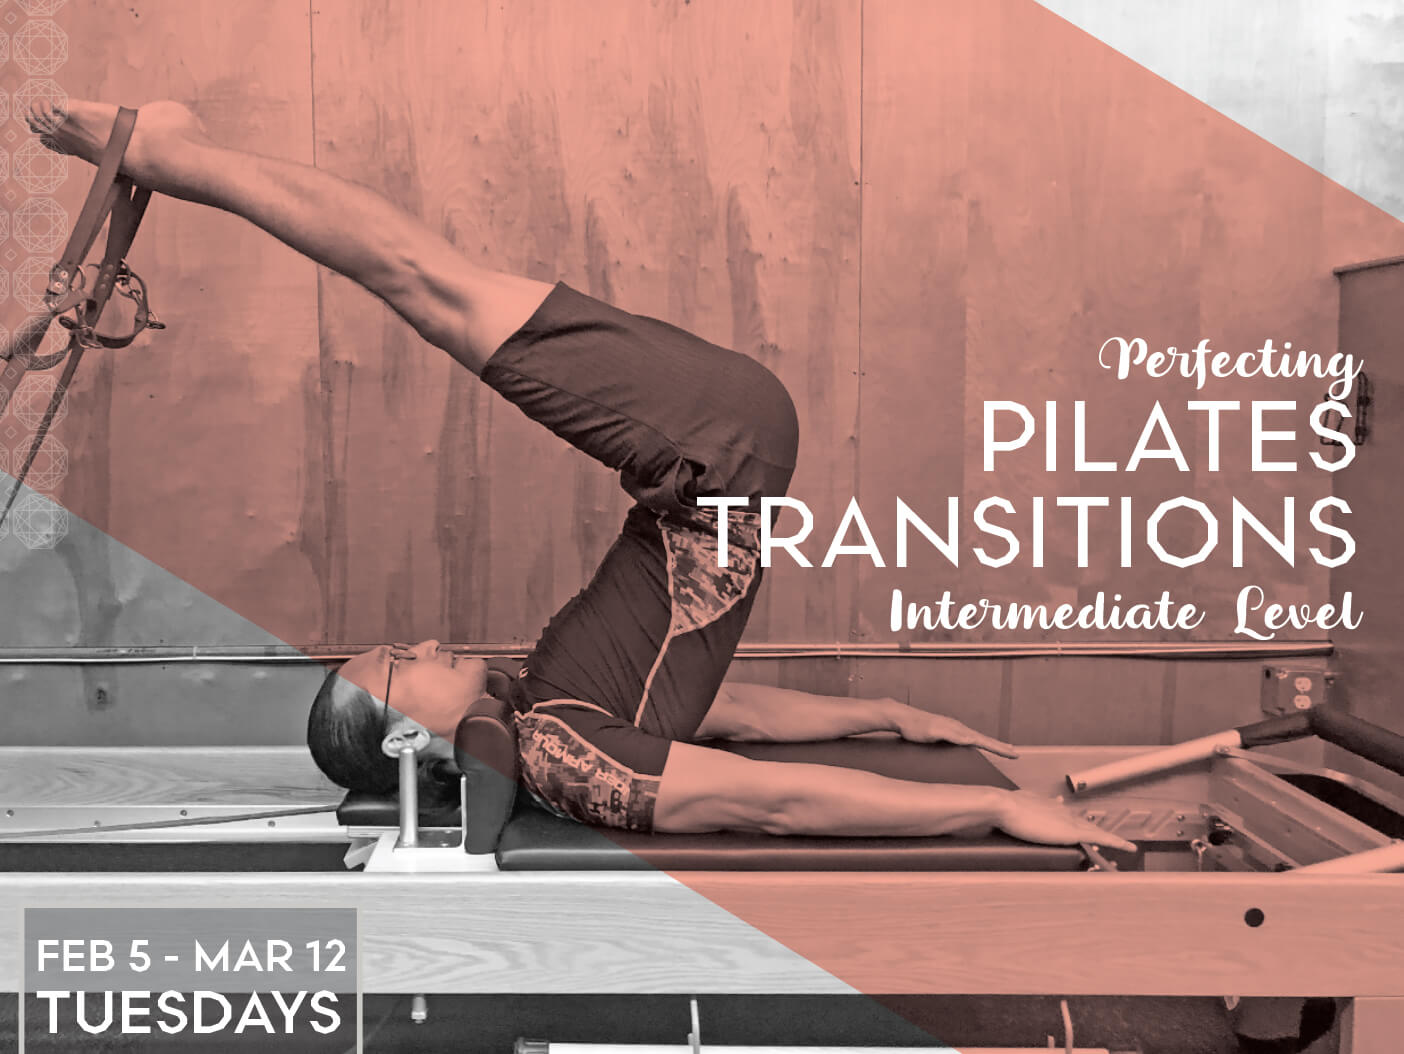 Perfecting Pilates Transitions: Intermediate Level